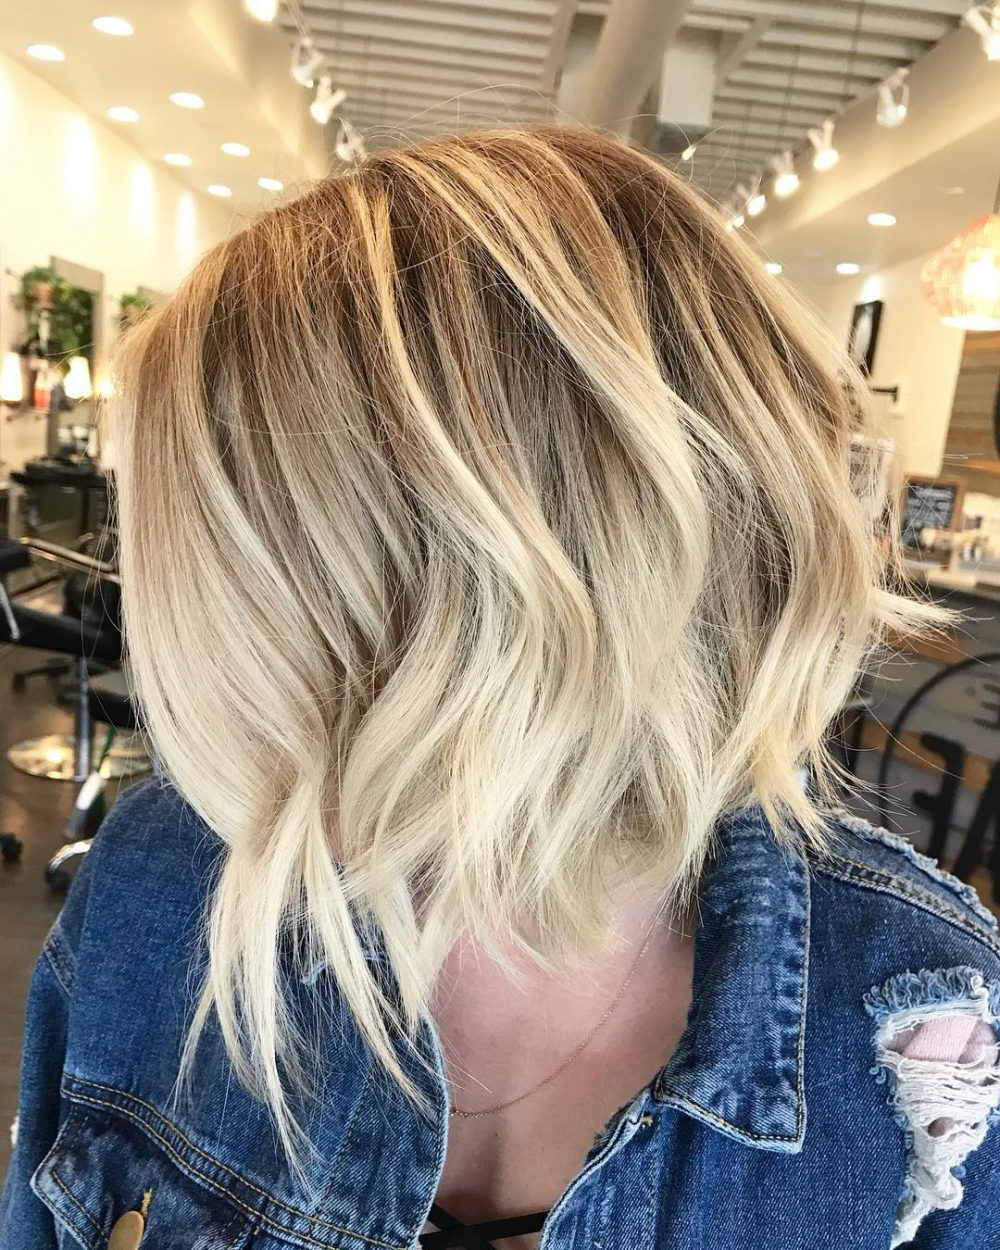 34 Best Choppy Layered Hairstyles (That Will Flatter Anyone) Pertaining To Widely Used Bedhead Layers For Long Hairstyles (Gallery 10 of 20)